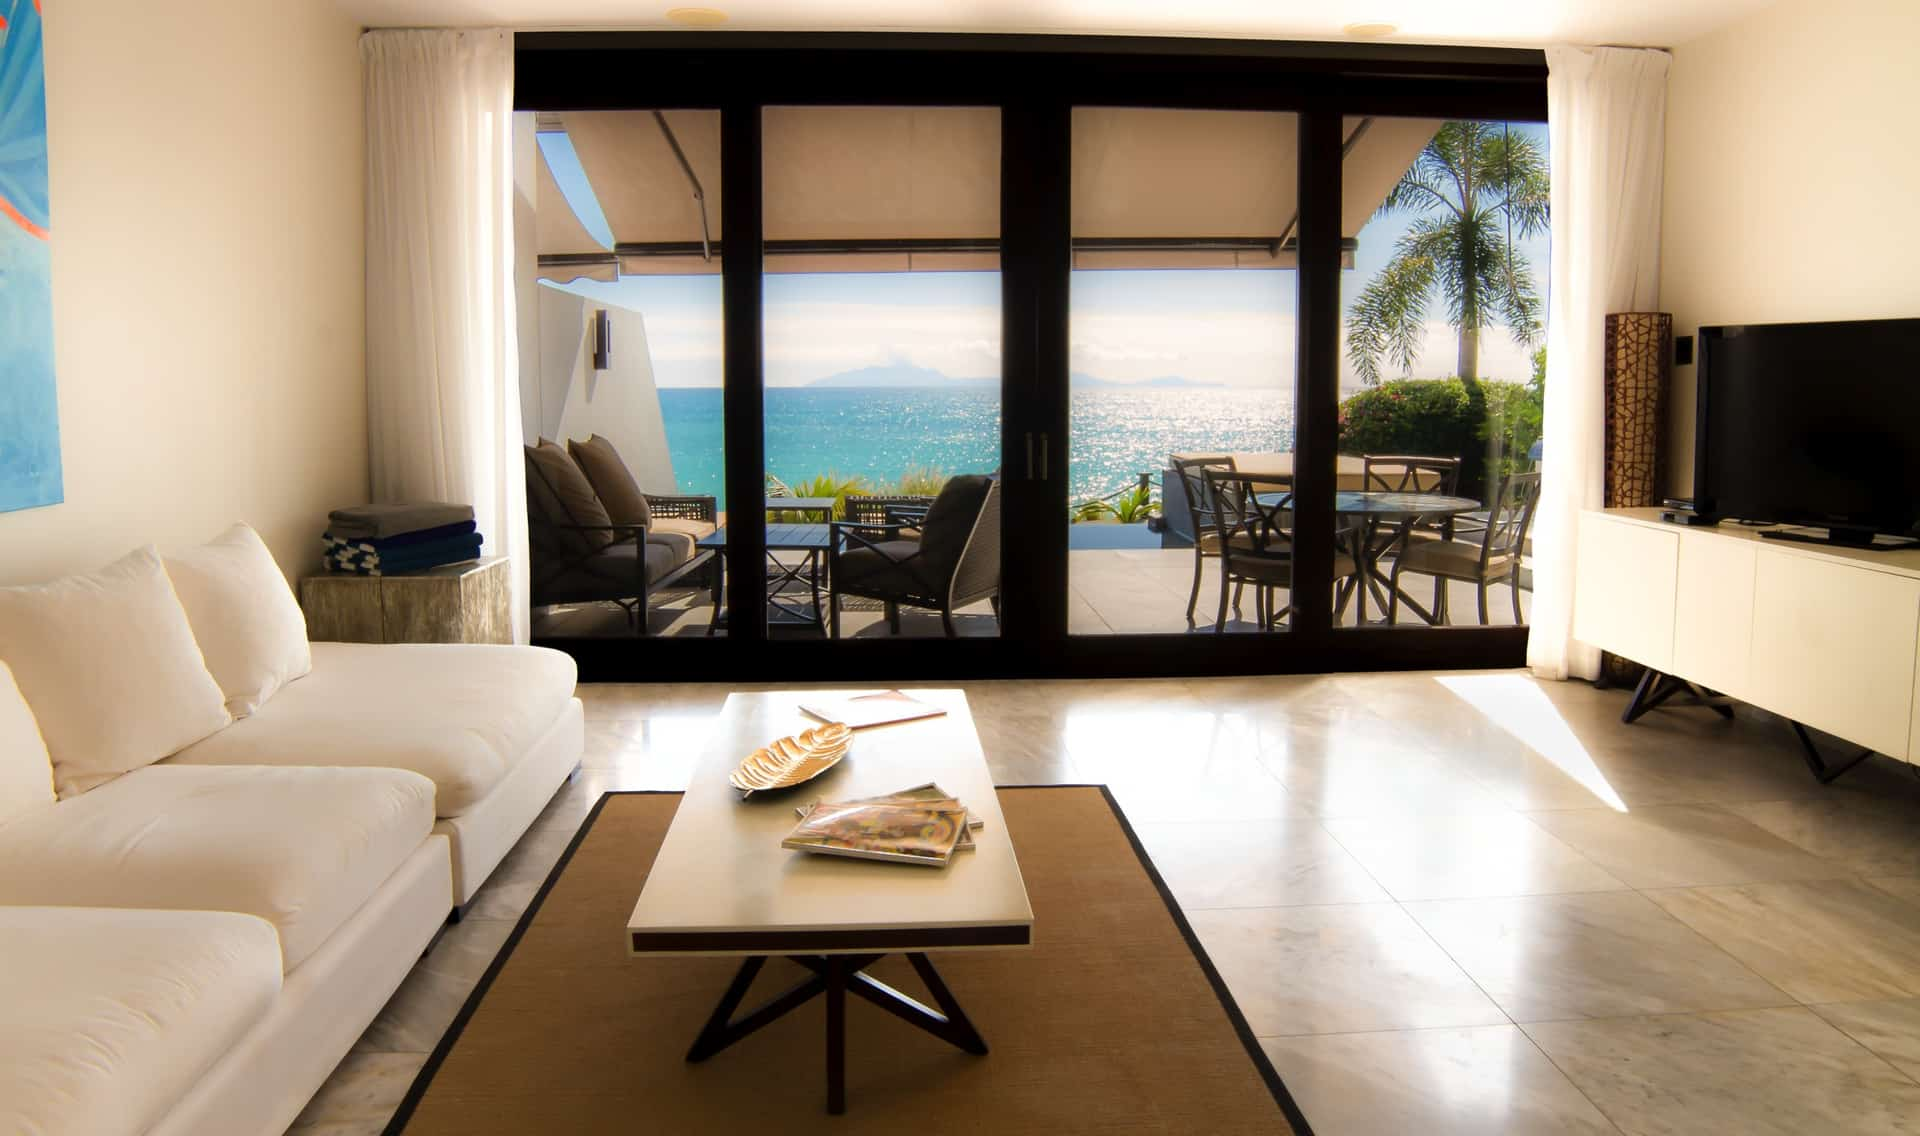 living room with view of the ocean